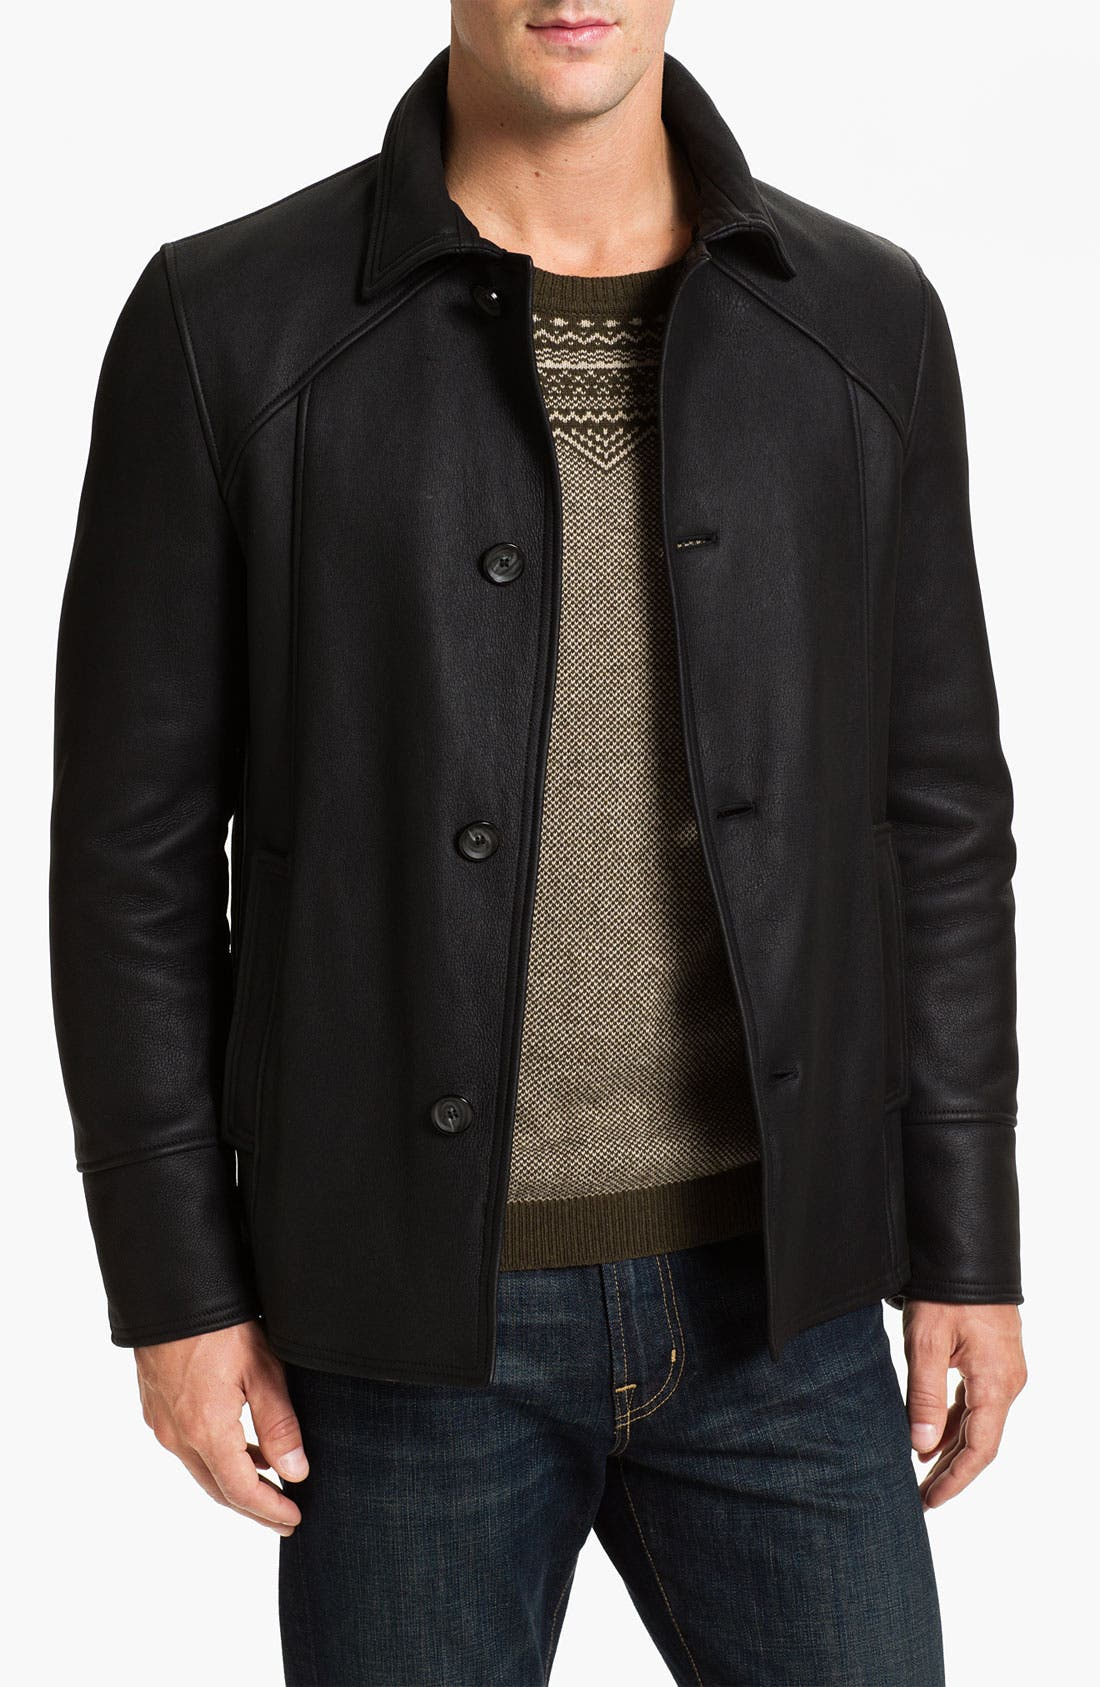 Main Image - Alex & Co. Single Breasted Leather Coat with Genuine Shearling Lining